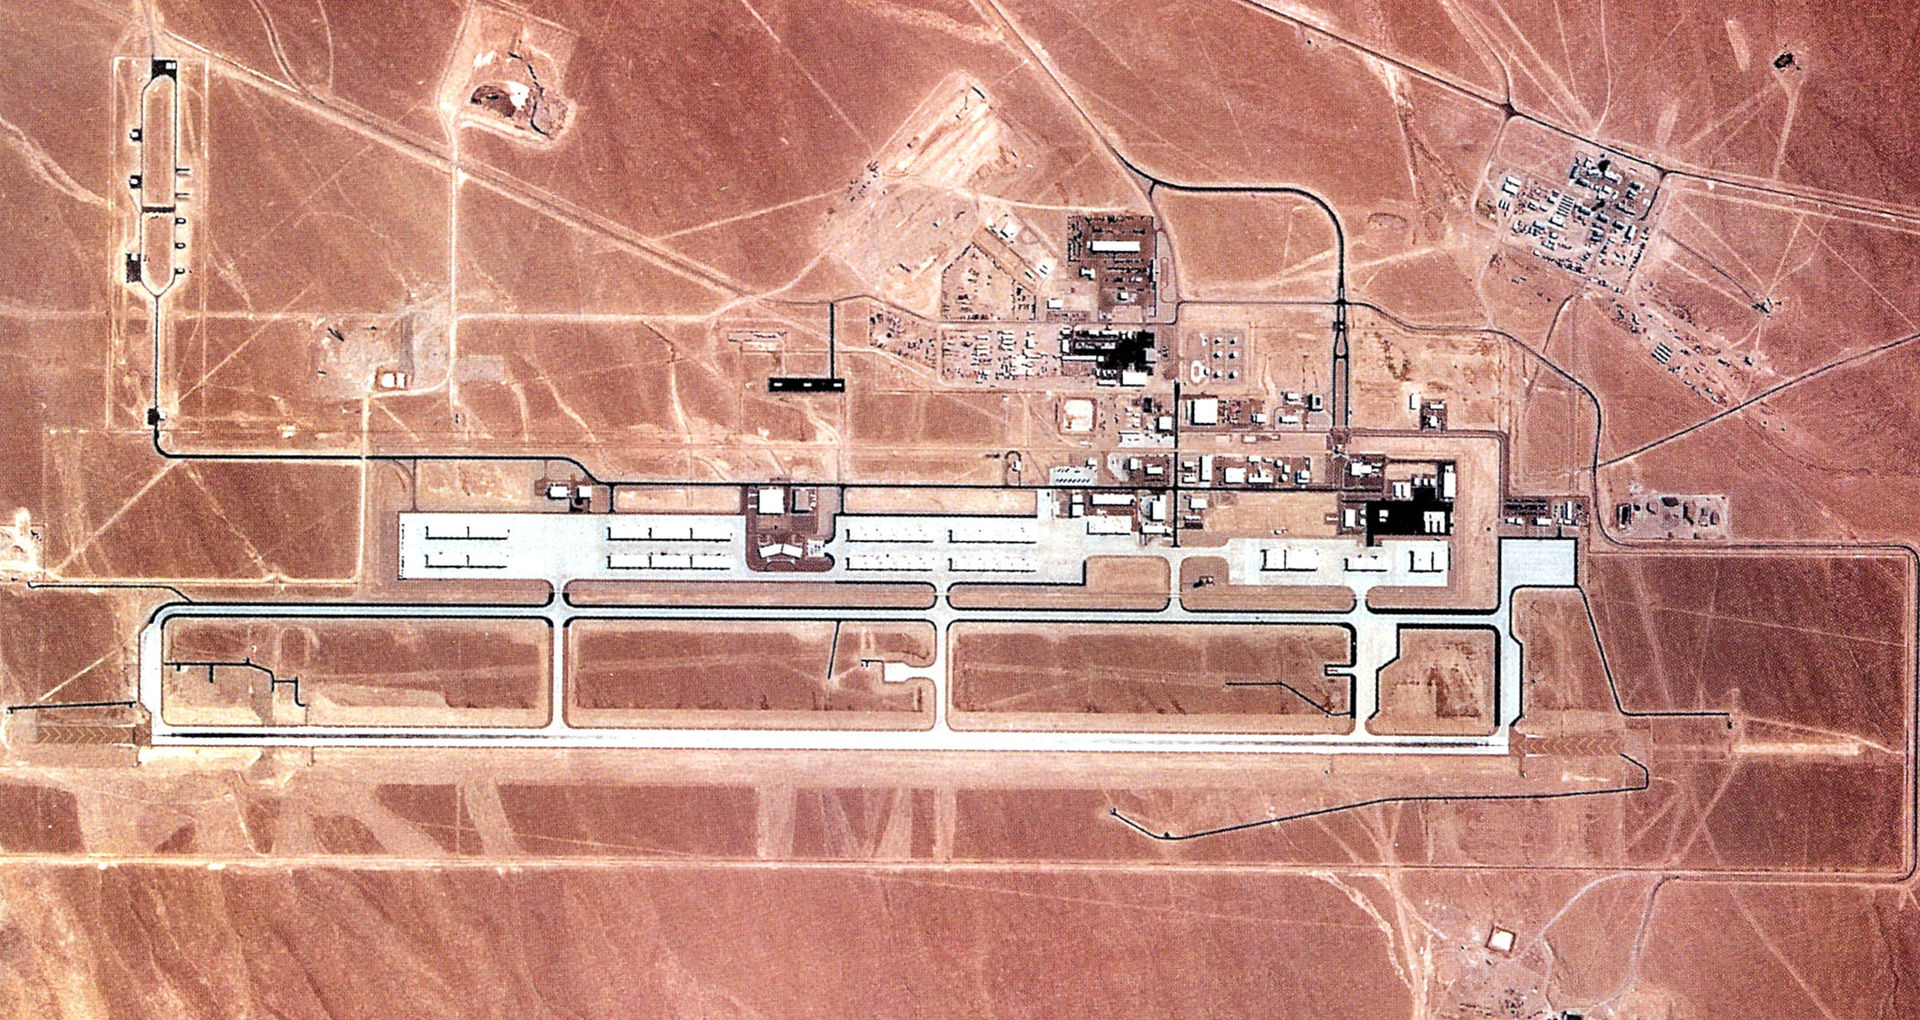 F-16C - Tonopah test range airport area 51